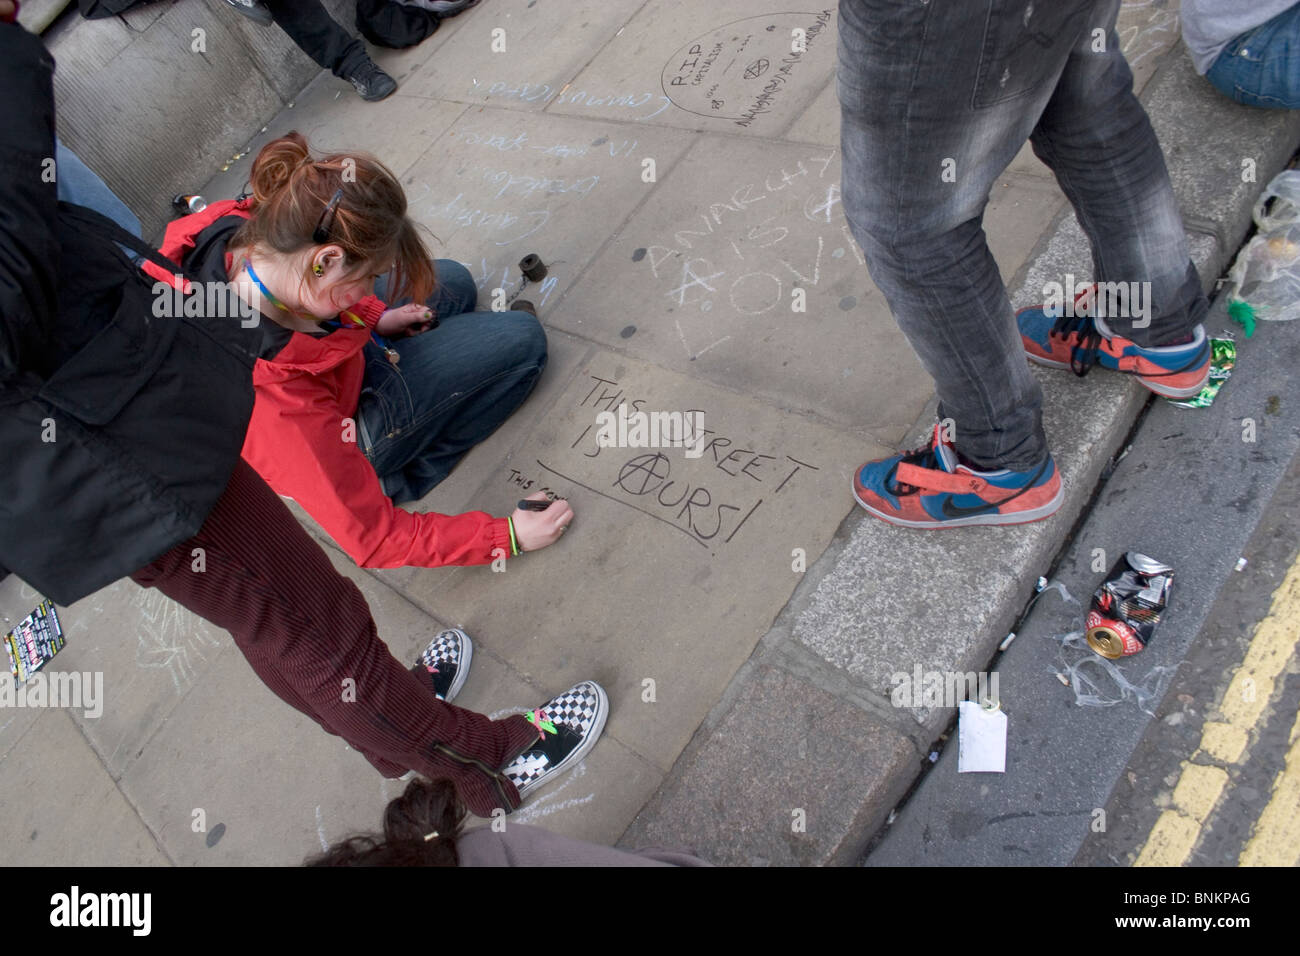 Girl writing  'This street is ours' on the pavement outside The Bank of England during G20 protest, London - Stock Image